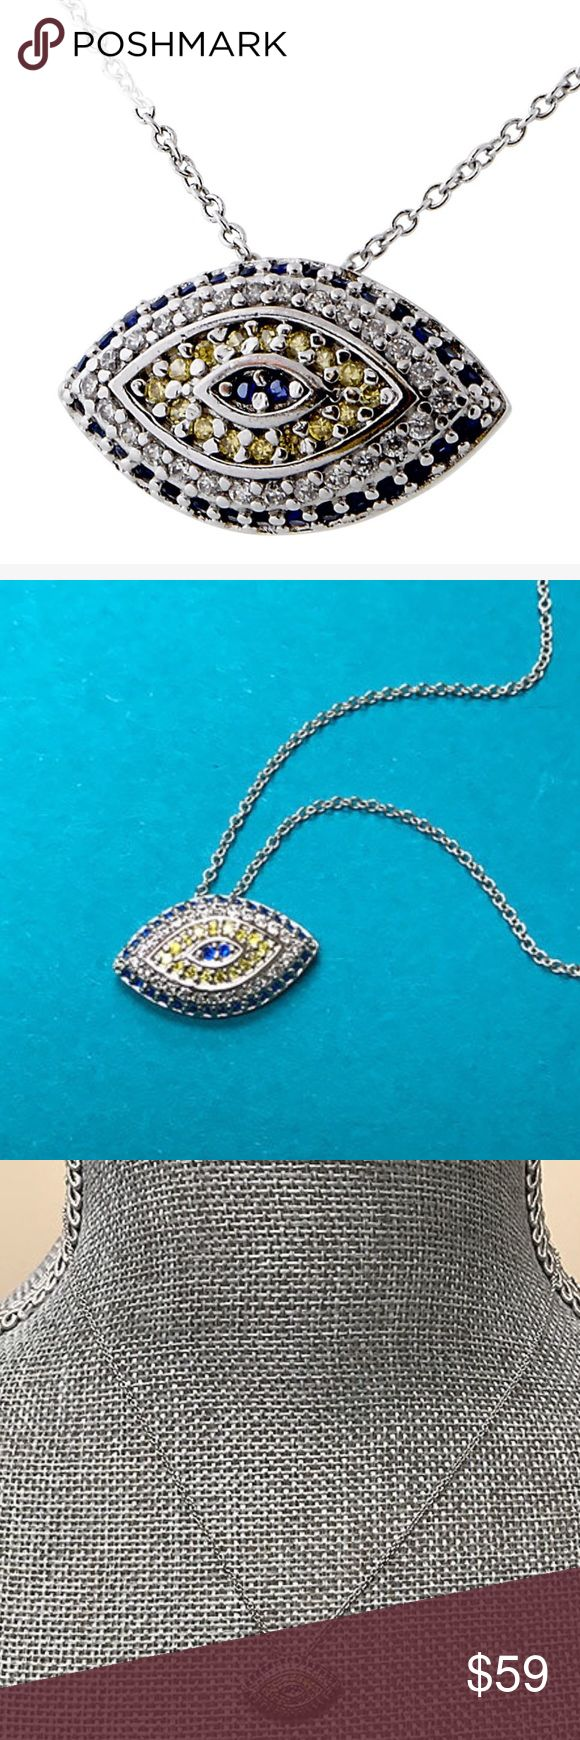 """Gemstone Evil Eye Necklace,NWT Scare all evil spirits away with this trendy evil eye necklace. This necklace is different and very pretty because is uses soft Canary Yellow, Sapphire Blue, and Clear cubic zirconia to gets its warning across.  16"""" chain length w/ 2"""" Extension Chain  1/2"""" Width x Slightly under 3/4"""" Wide Swarovski Crystals in Canary Yellow, and Sapphire Blue Clear Cubic Zirconia Silver-plated Stainless Steel metal Spring-ring closure ZD Jewelry Necklaces"""